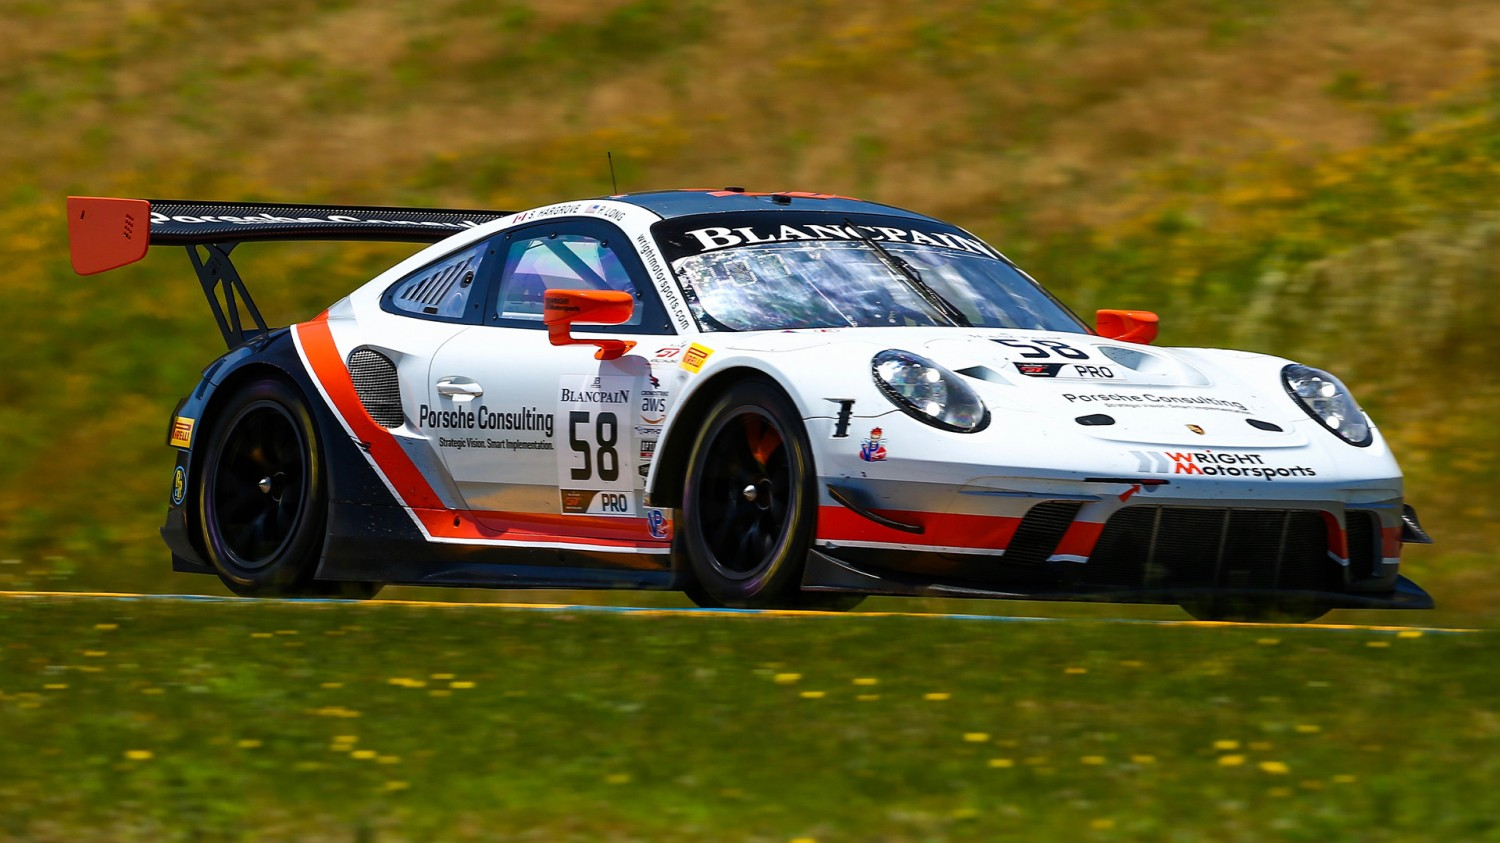 Long/Hargrove Win Blancpain GT World Challenge America Round 8 at Sonoma, Sofronas/Werner Win in Pro/Am